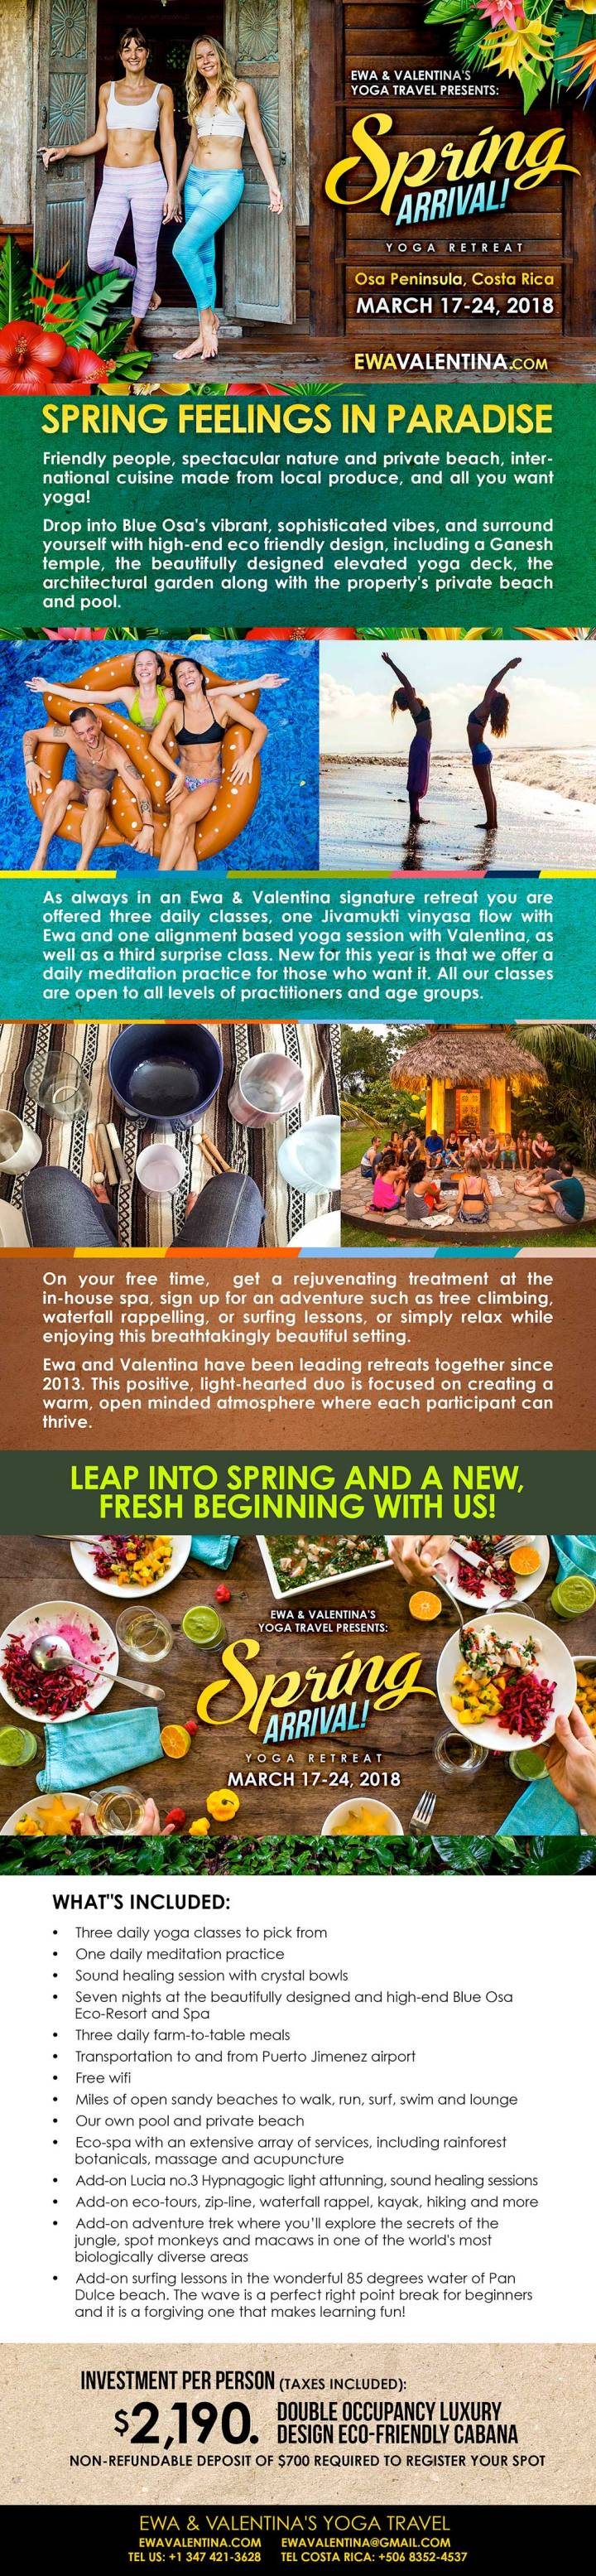 Spring-Arrival-Yoga-Retreat-New-Years-Eve-Ewa-Valentina-Blue-Osa-Costa-Rica